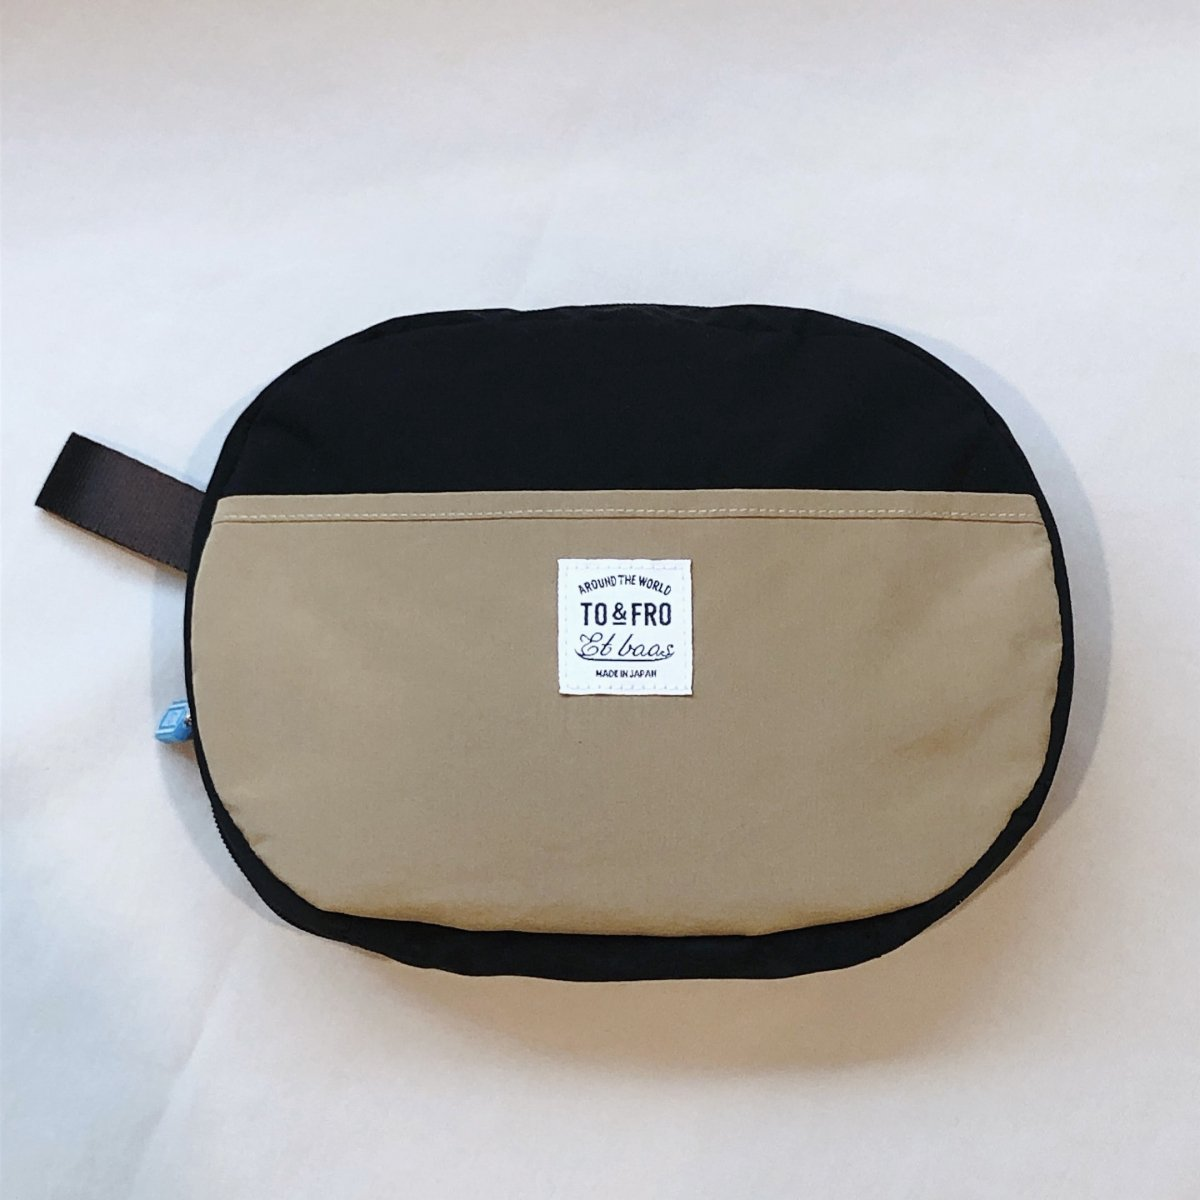 One mile POUCH(Et baas x TO&FRO) 詳細画像2